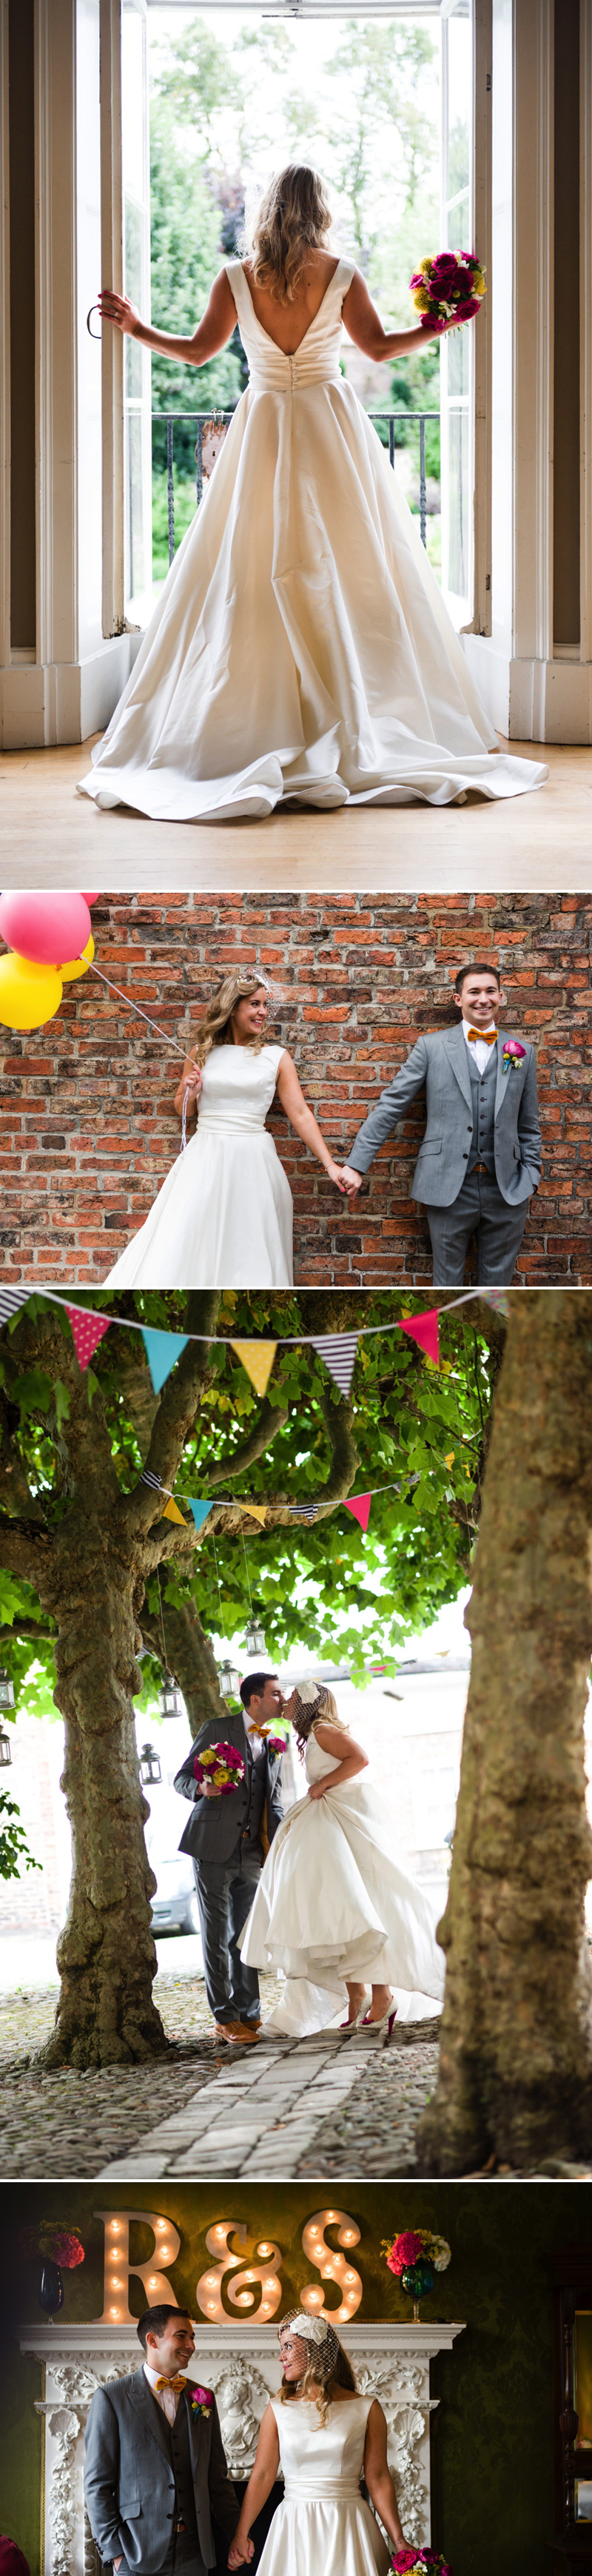 vintage-circus-themed-wedding-yorkshire-wedding-venue-grays-court-york-coco-wedding-venues-shoot-photography-007